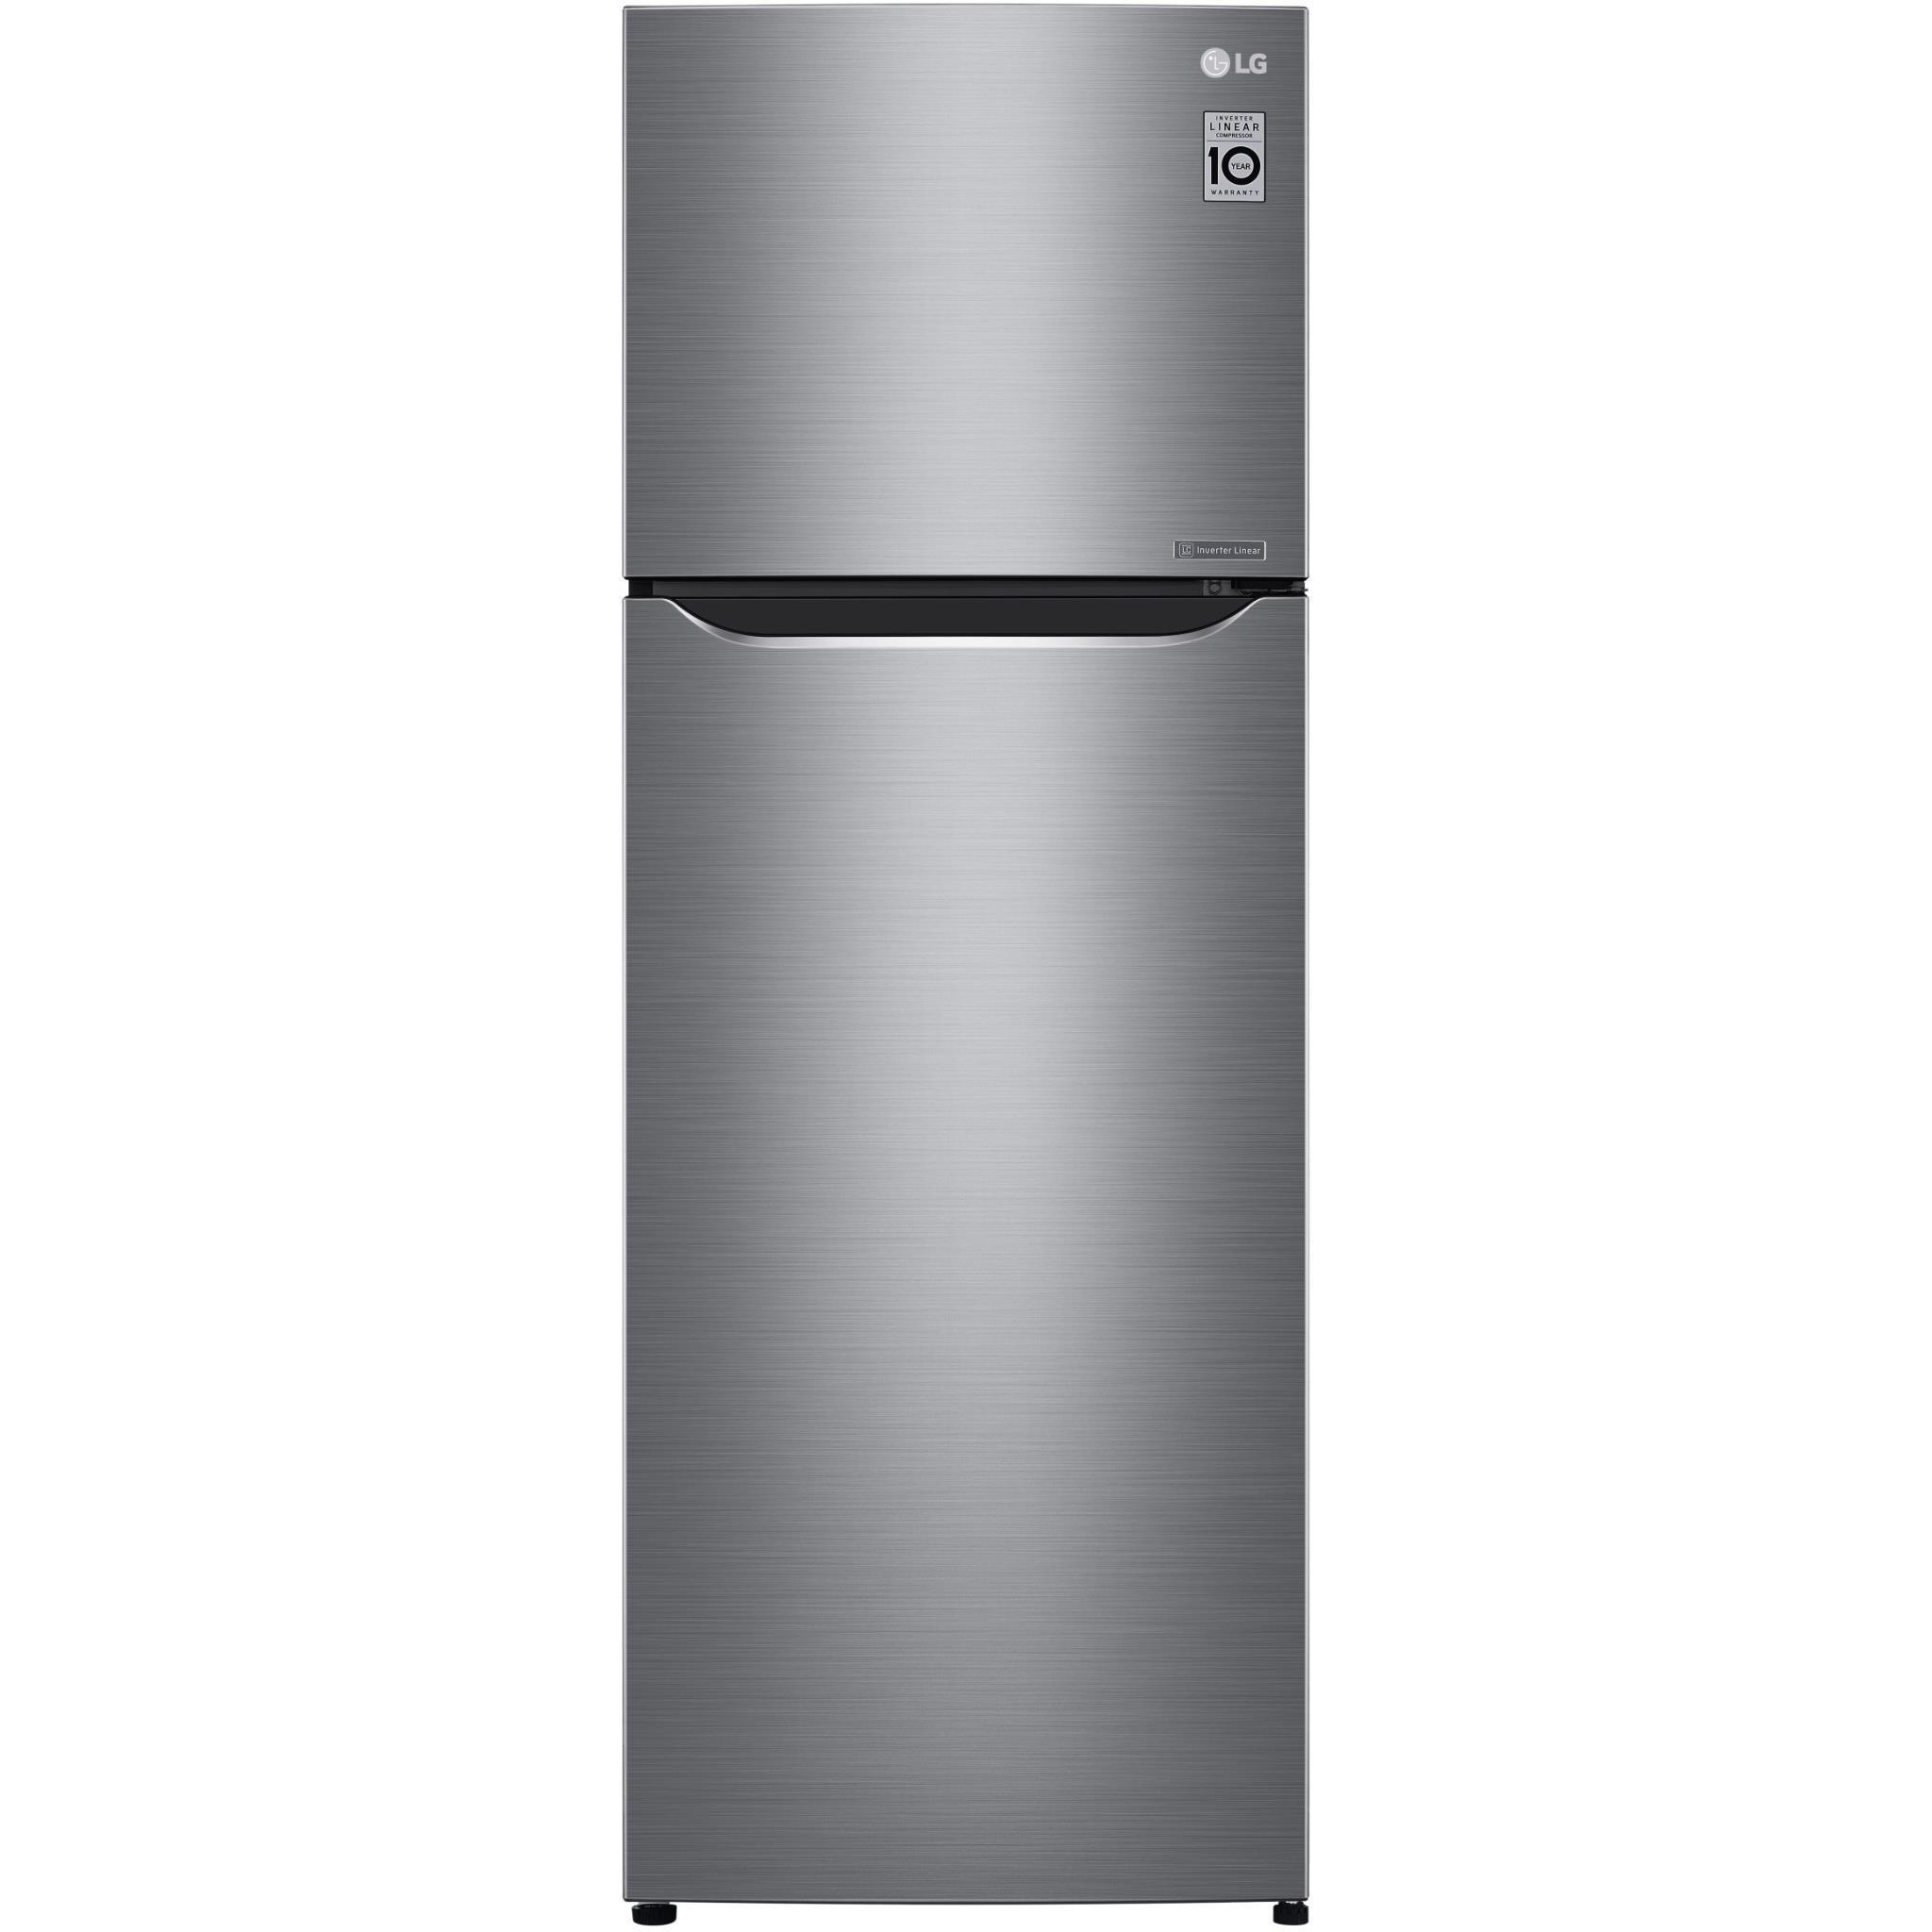 LG GT-332SCDC 332L Top Mount Fridge (S/Steel)